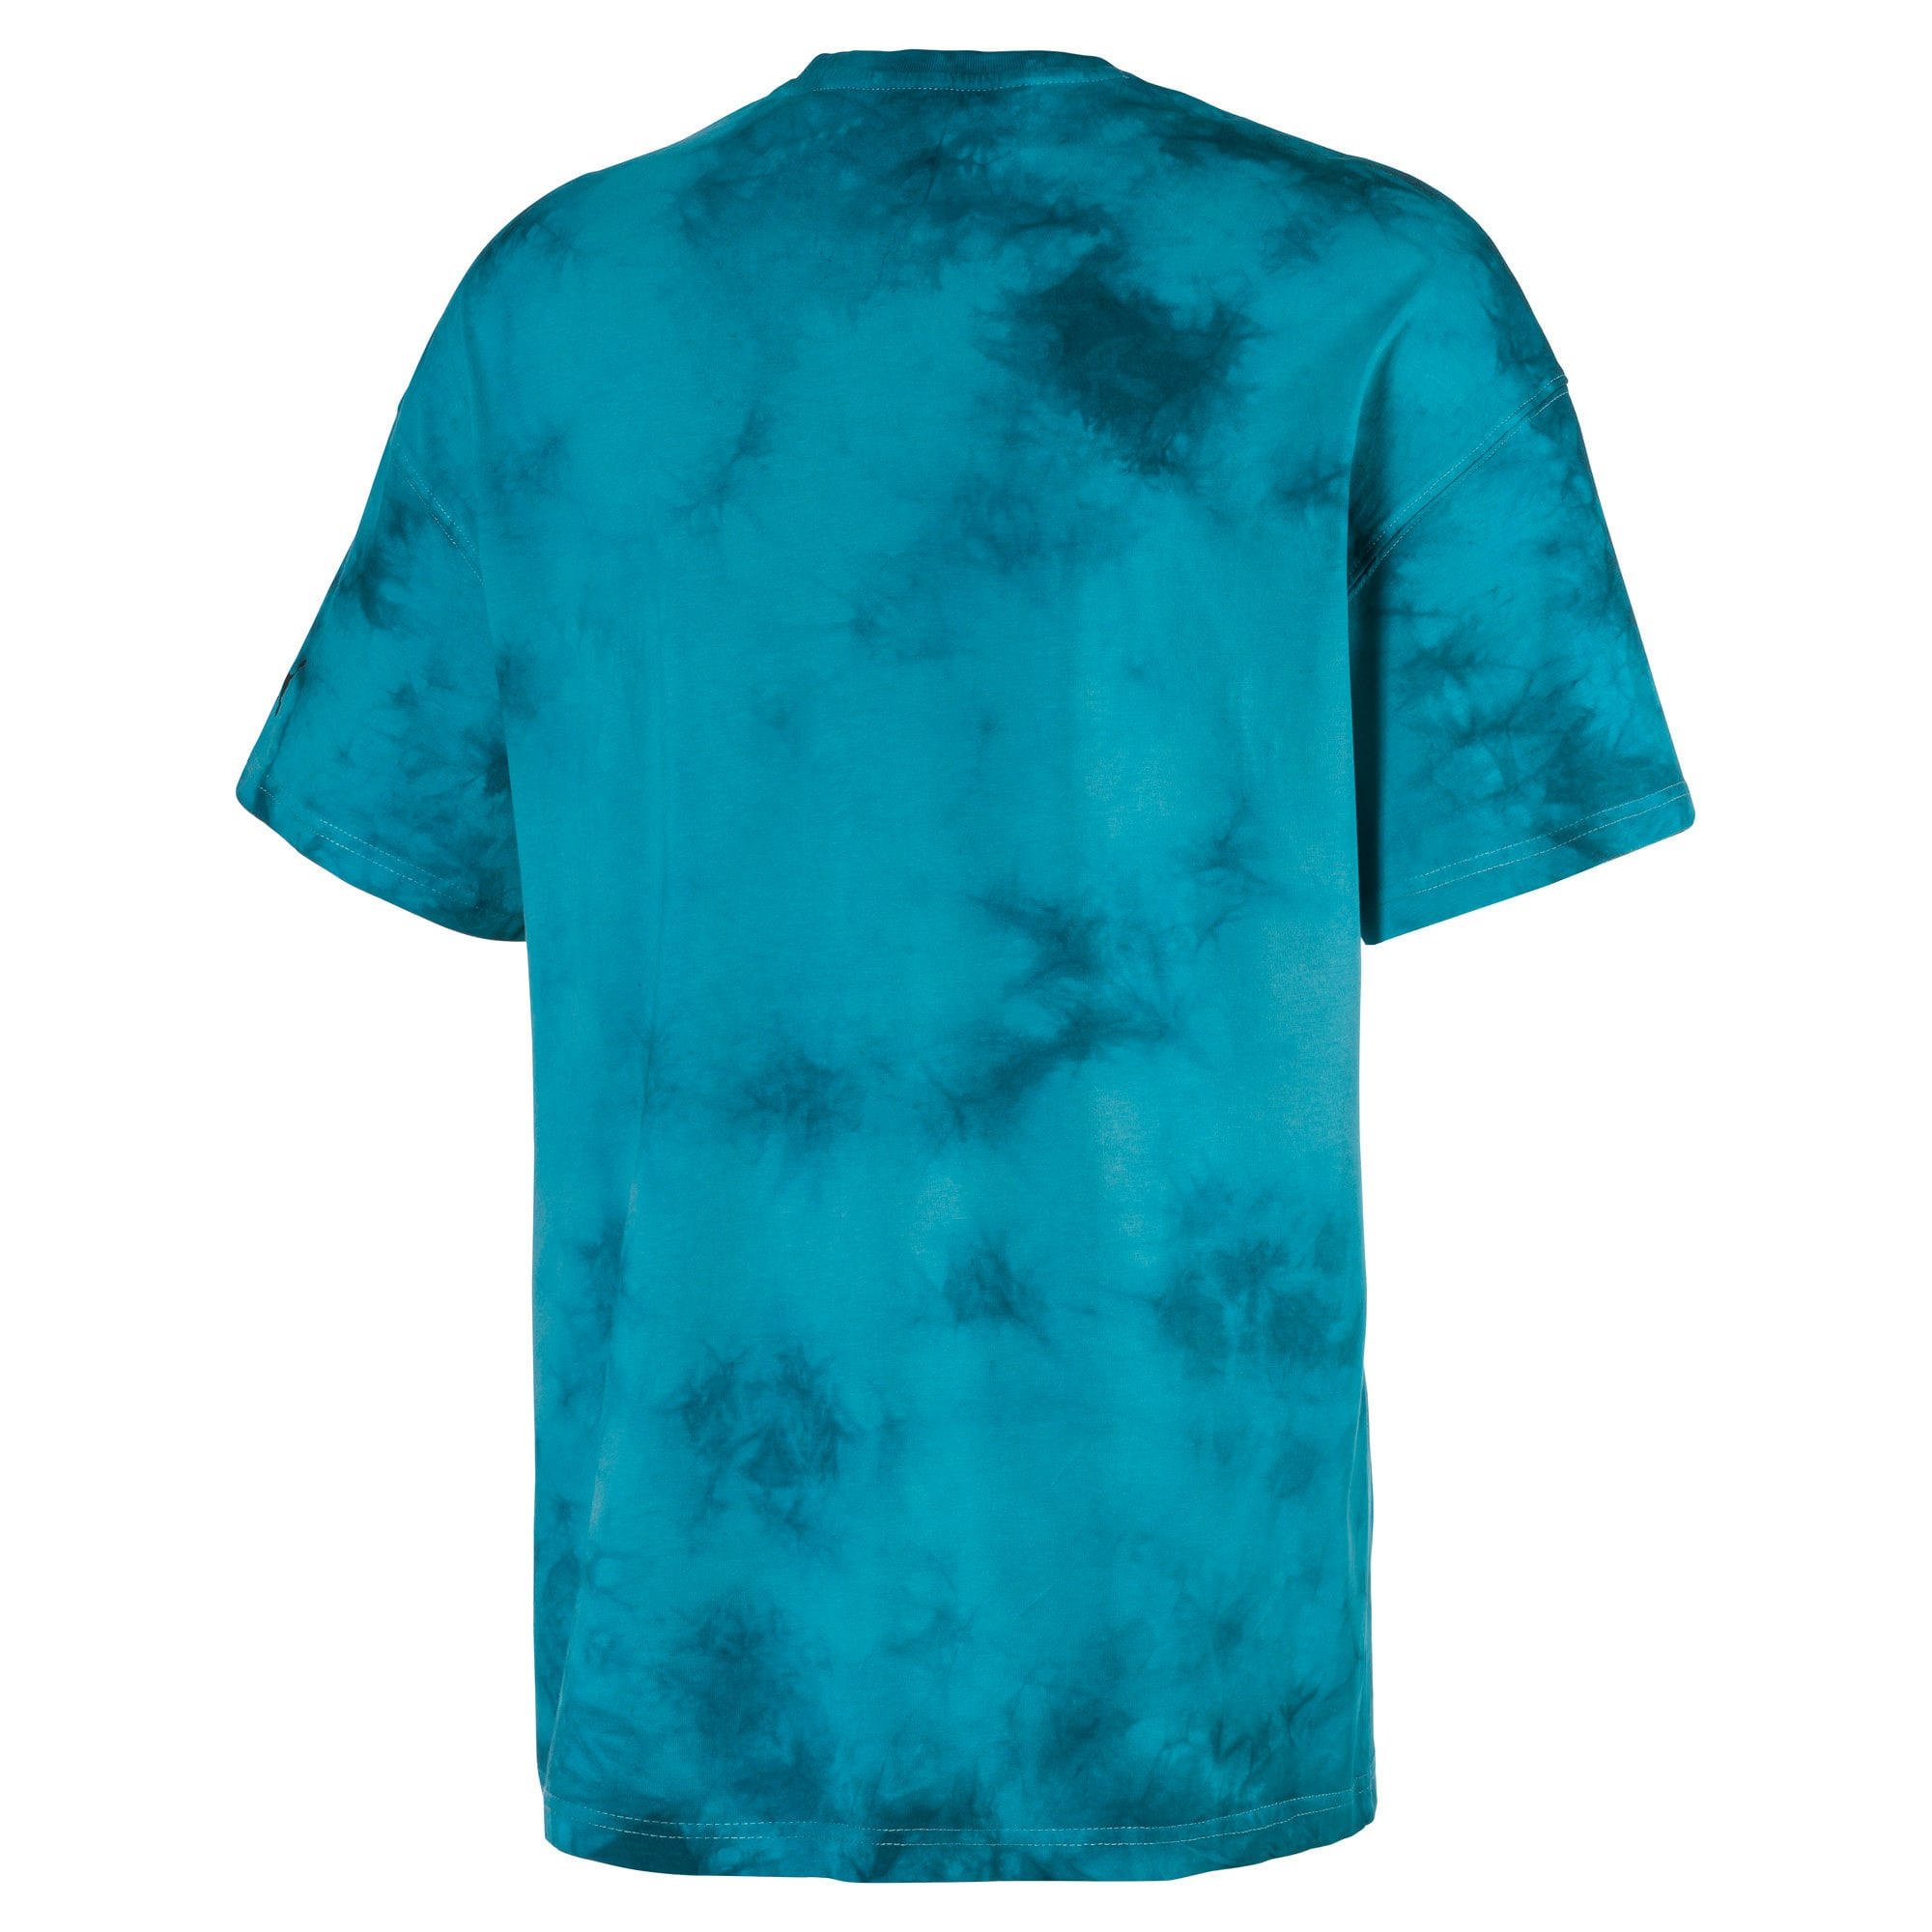 Boxy Men's Tee, Blue Coral, large